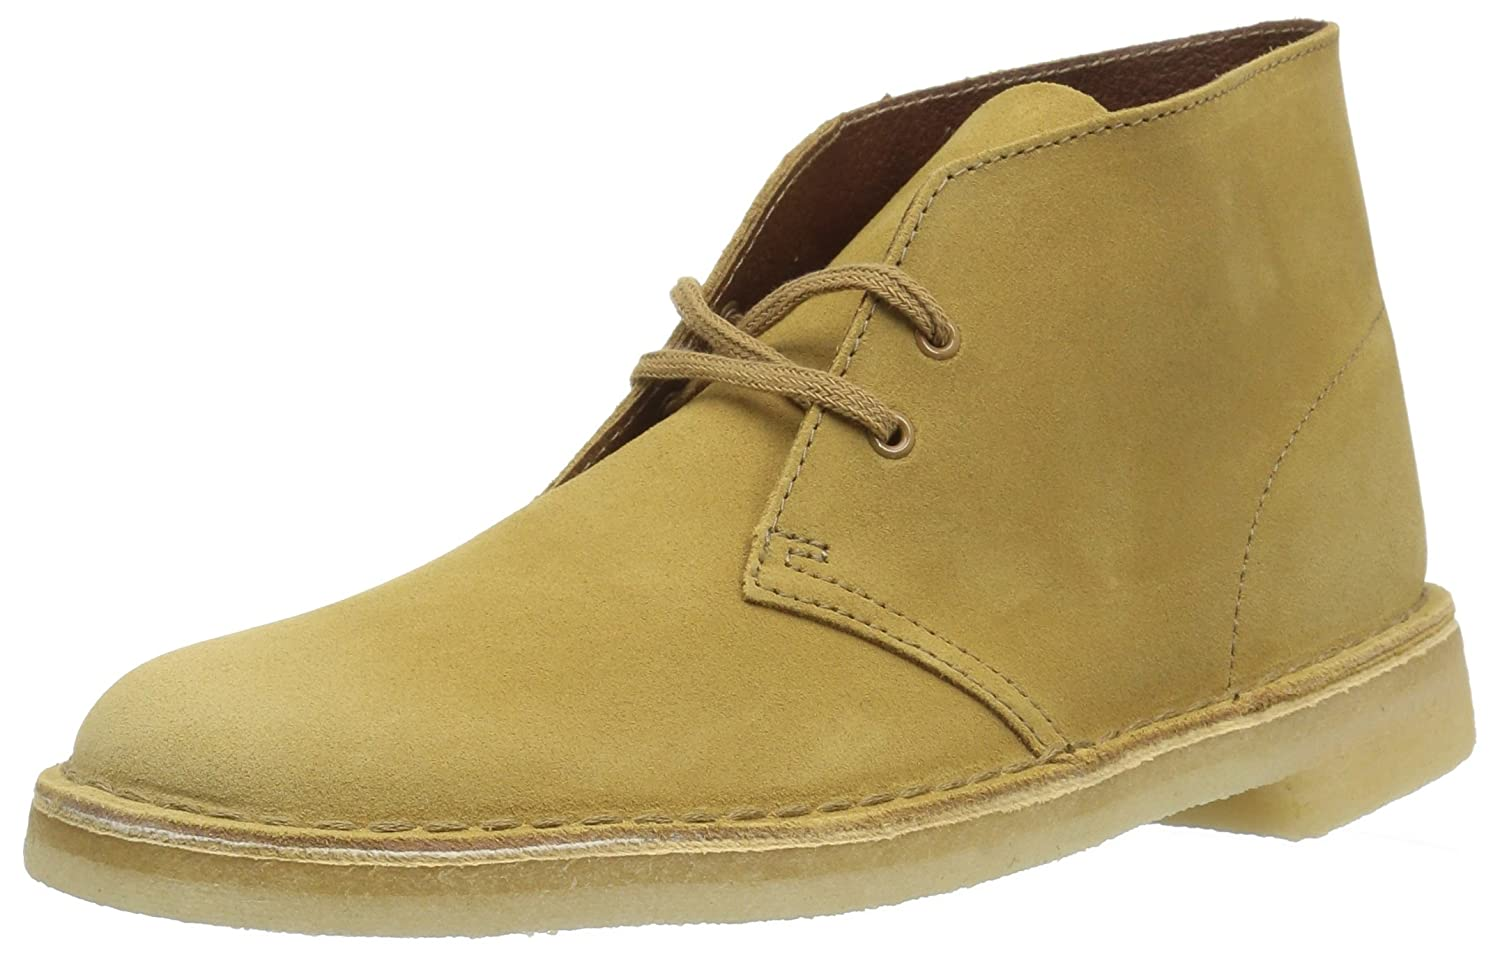 Oak Suede Clarks Originals Men's Desert Boot